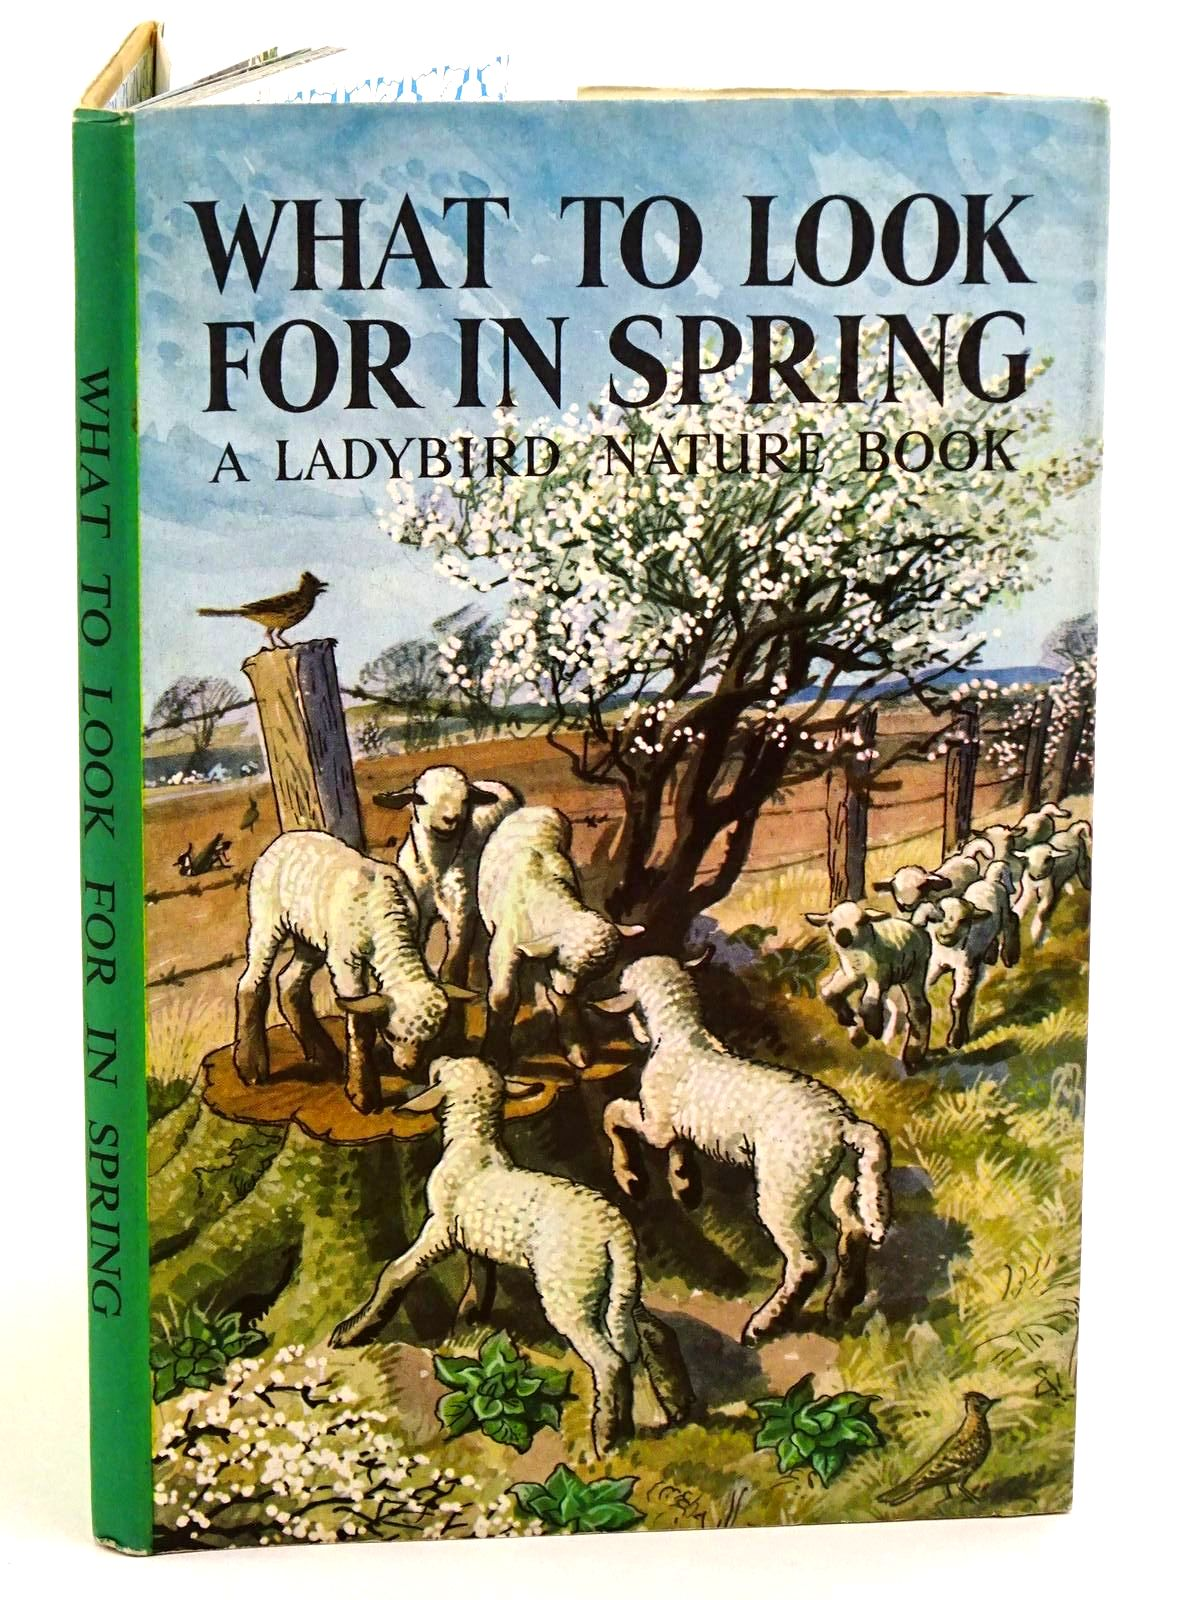 Photo of WHAT TO LOOK FOR IN SPRING written by Watson, E.L. Grant illustrated by Tunnicliffe, C.F. published by Wills & Hepworth Ltd. (STOCK CODE: 1318155)  for sale by Stella & Rose's Books